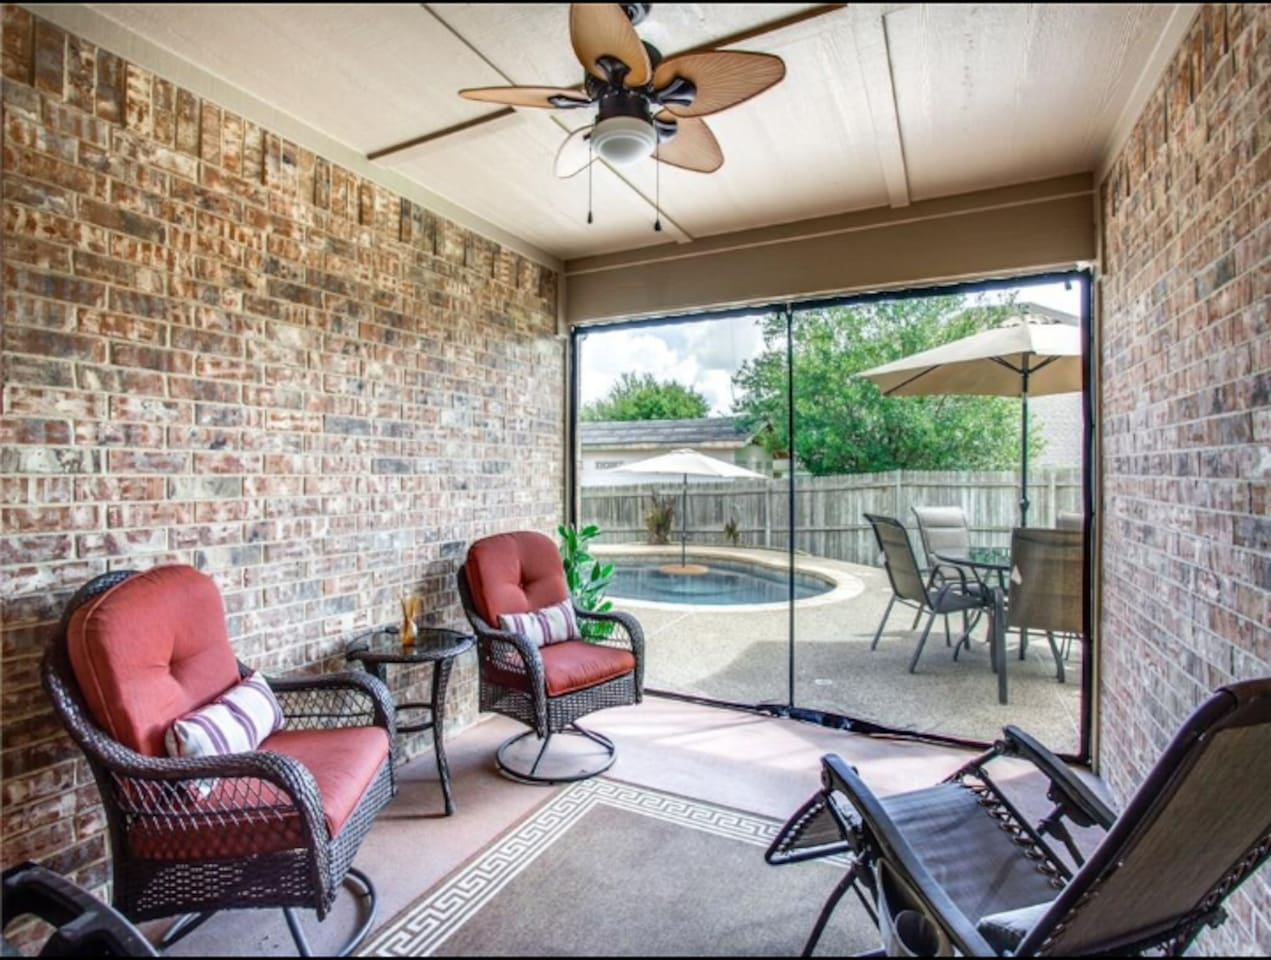 Home on Private Street Cul De Sac! Fenced Back Yard Private Smoking area outside!